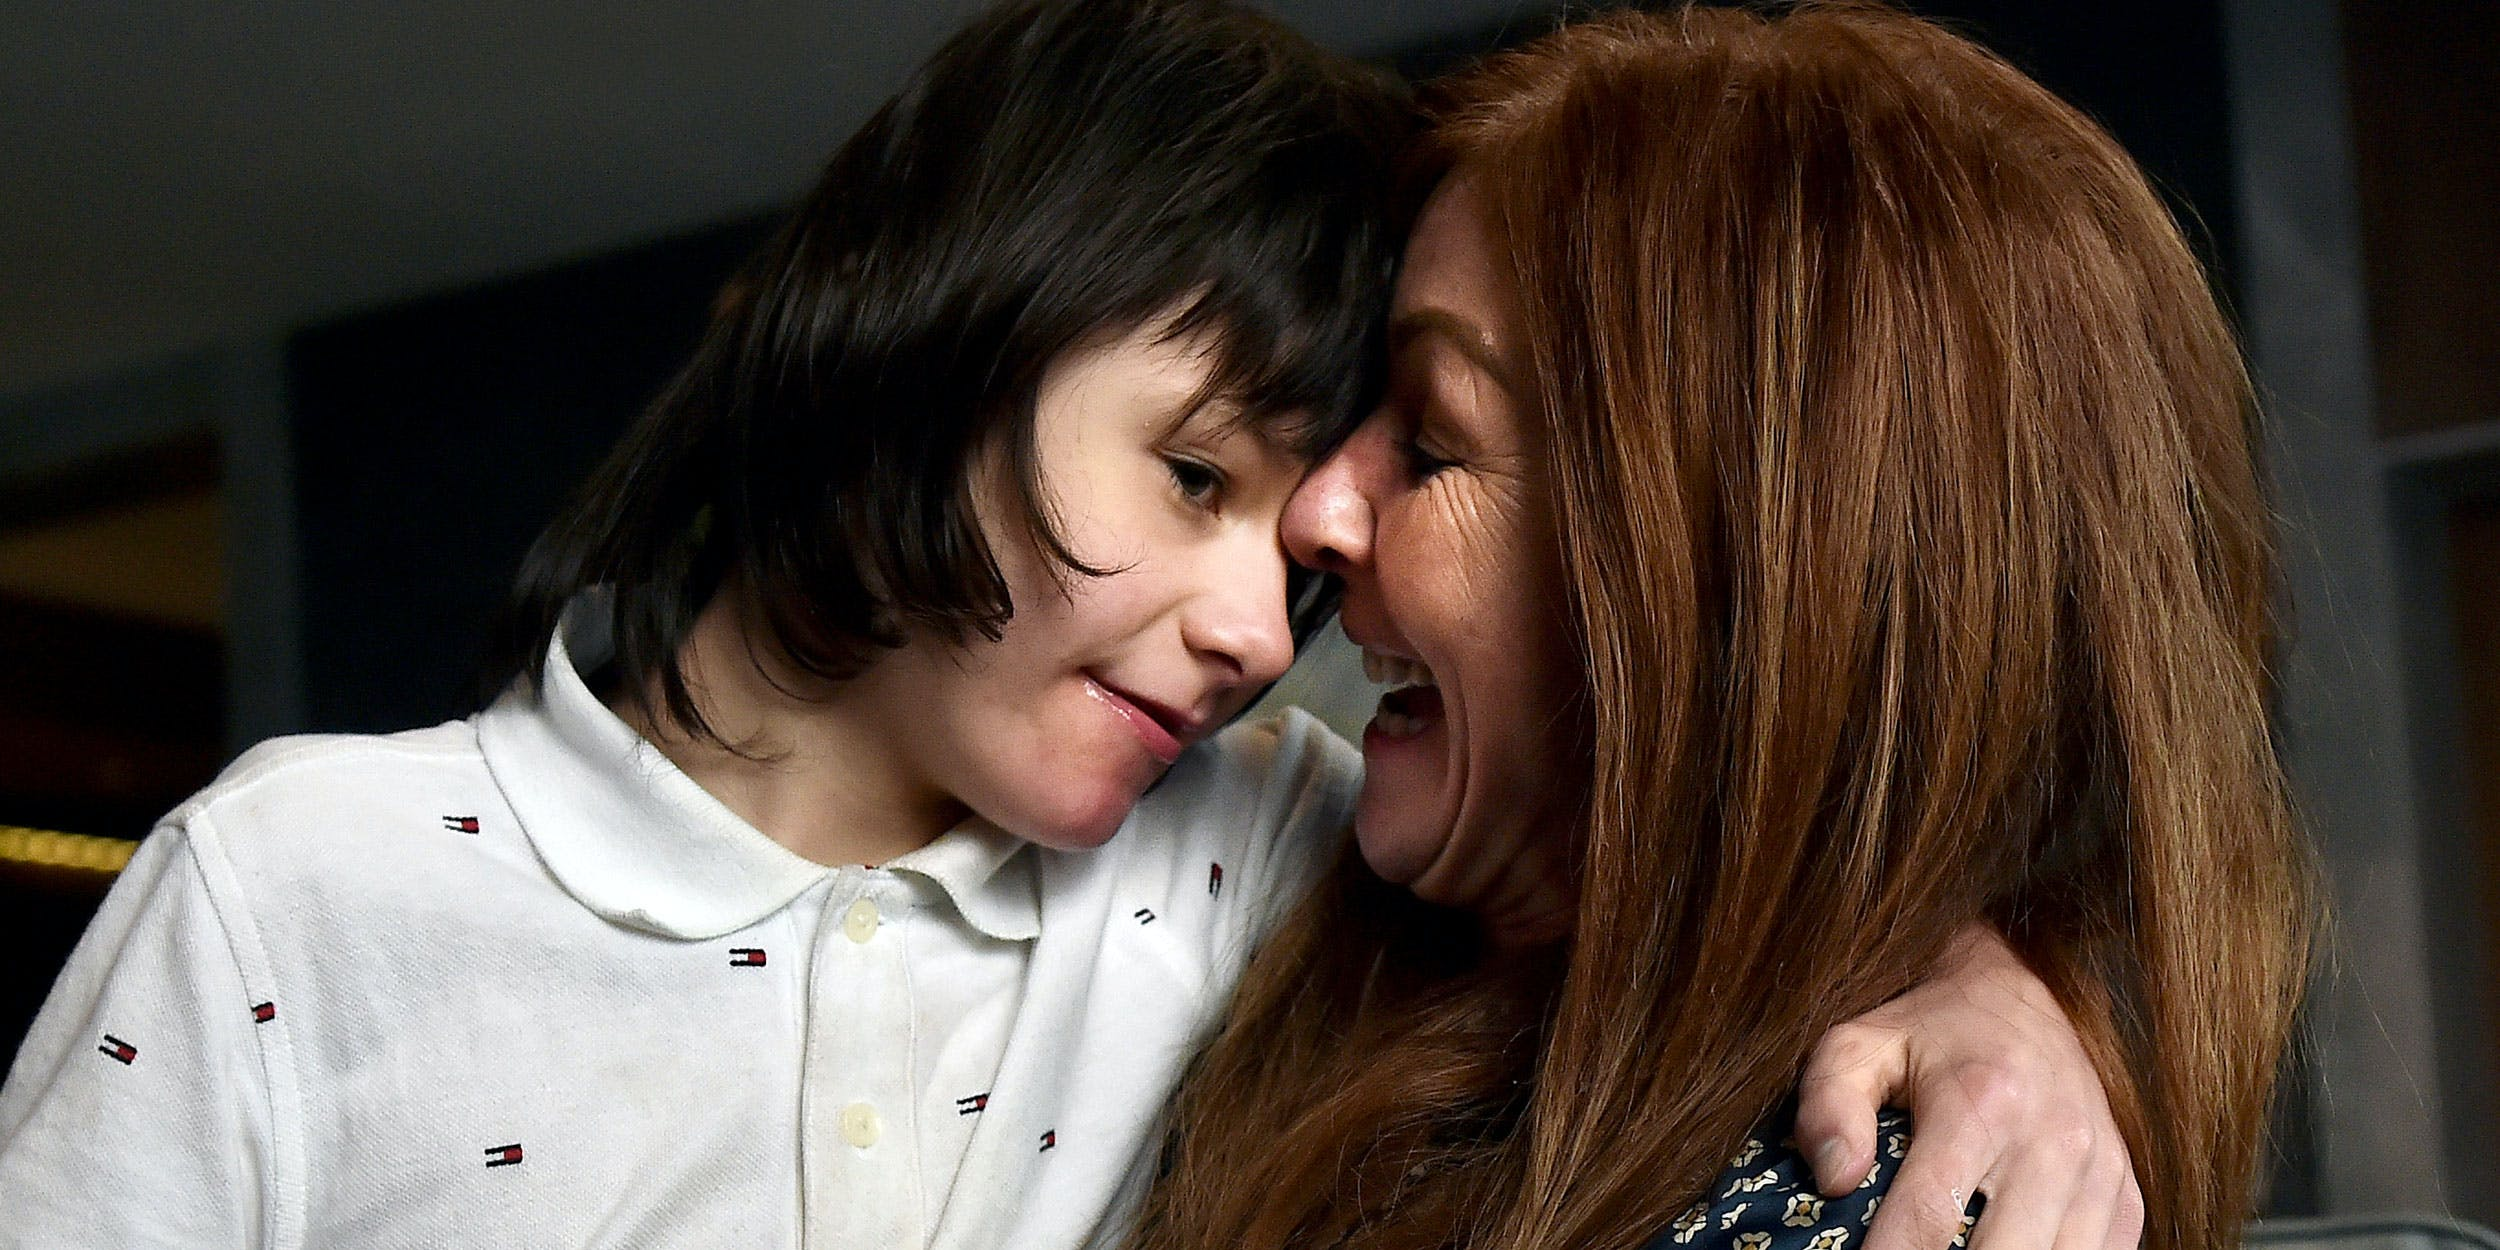 Billy Caldwell and his mother Charlotte as they return to Belfast on July 5, 2018. Billy's story about CBD for epilepsy spurred a debate in the UK about whether medical cannabis should be legal for prescription. (Photo by Charles McQuillan/Getty Images)